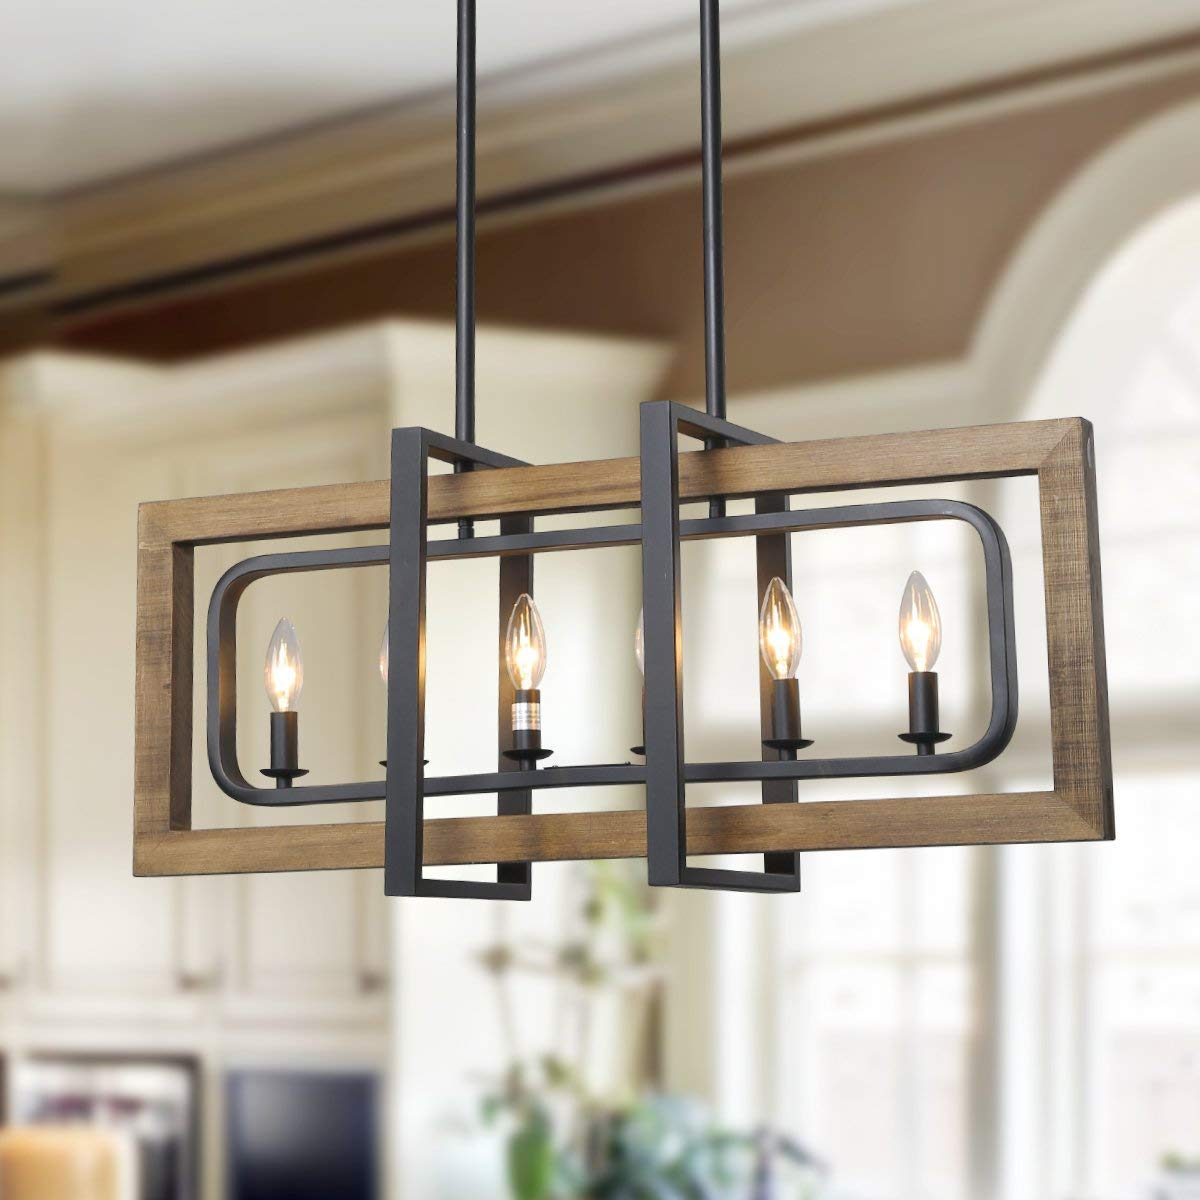 "LOG BARN 6 Lights Farmhouse Island Pendant Chandelier in Distressed Wood and Matte Black Metal Finish, 31.5"" Large Kitchen Light Fixture, A03429"